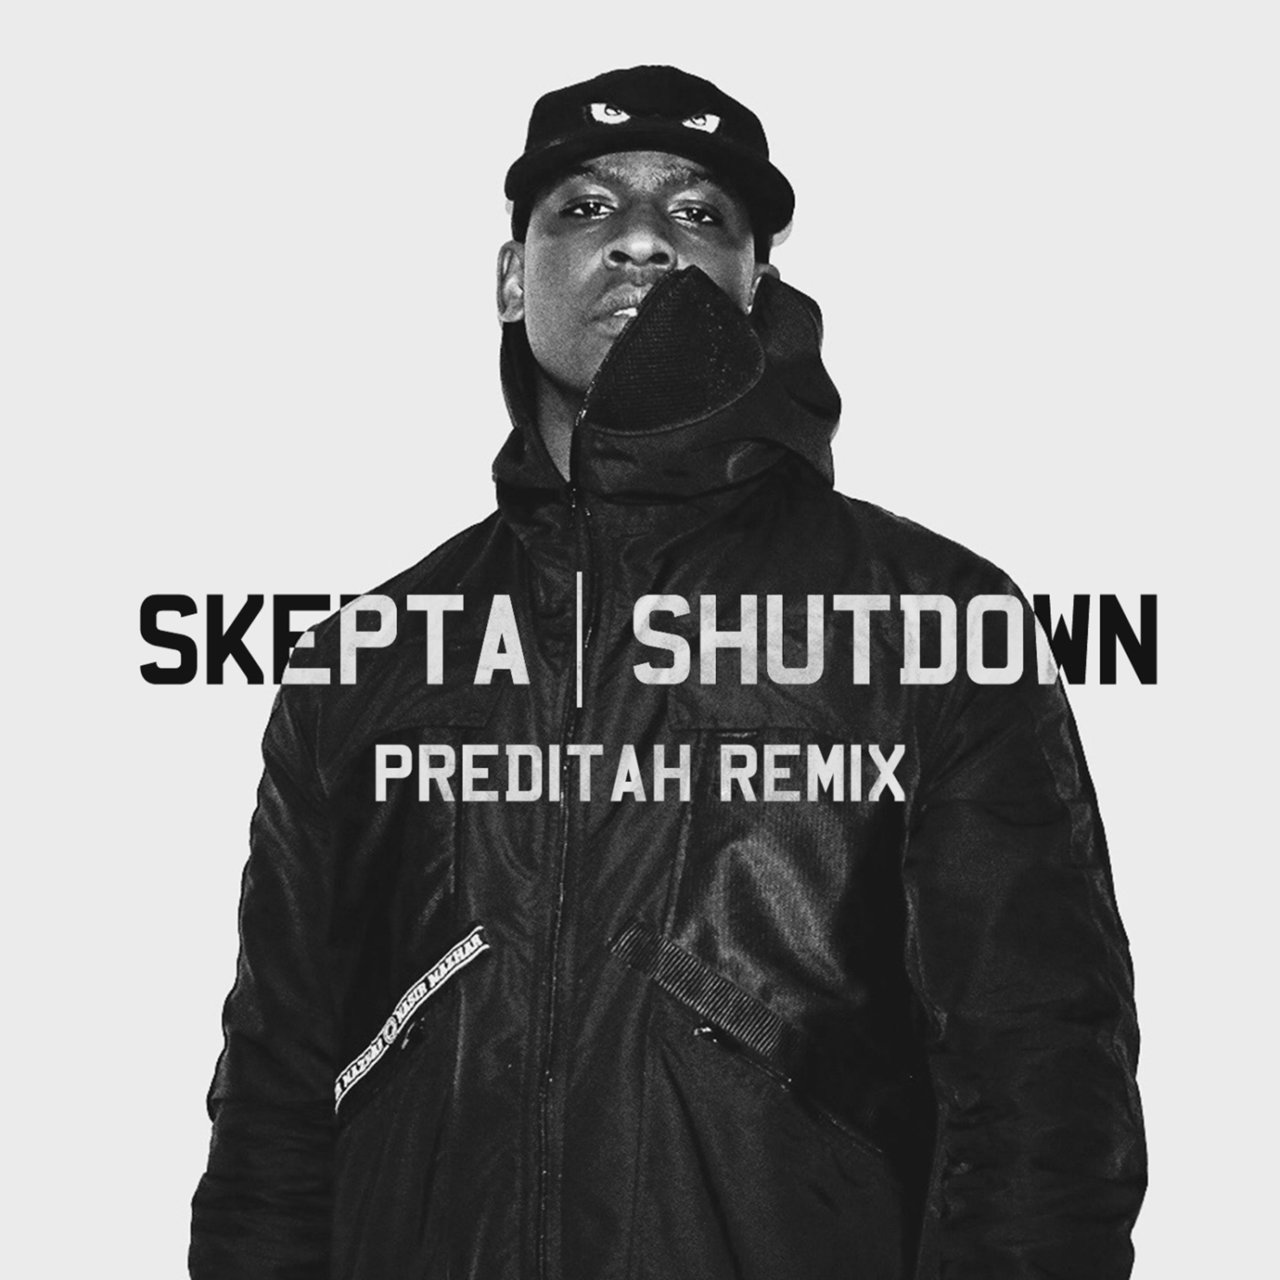 Shutdown (Preditah Remix)